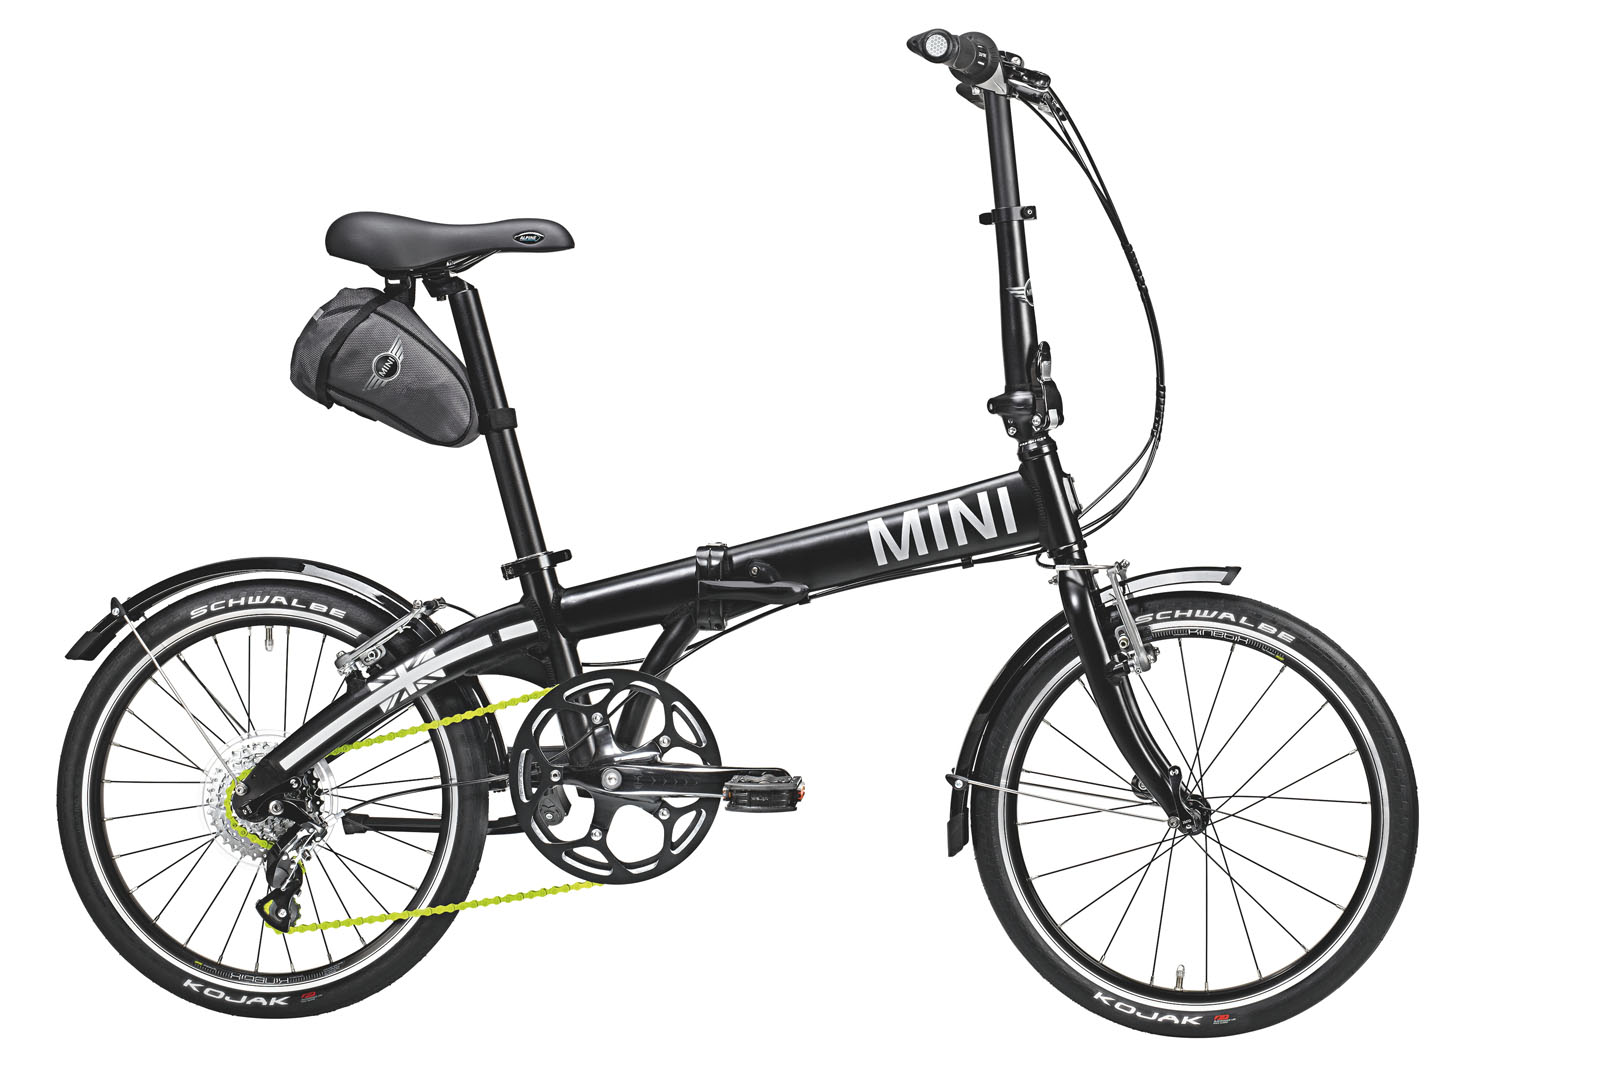 Mini Launches New Folding Bike Priced At 499 728